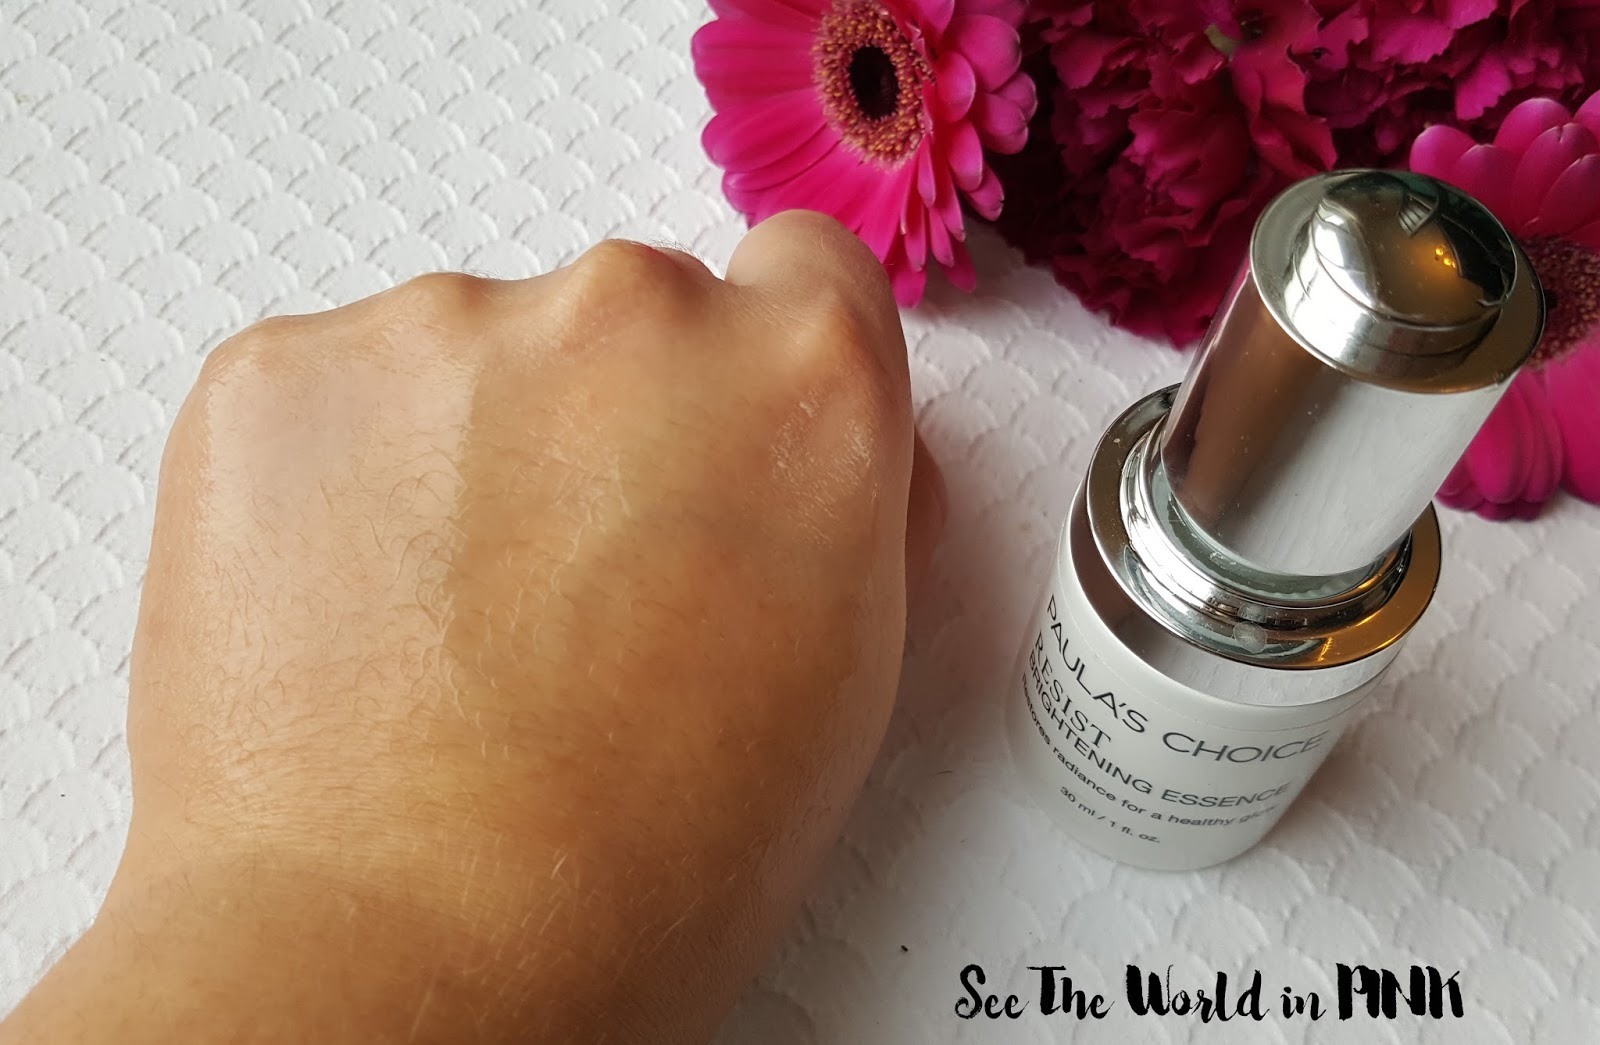 Paula's Choice Brightening Essence